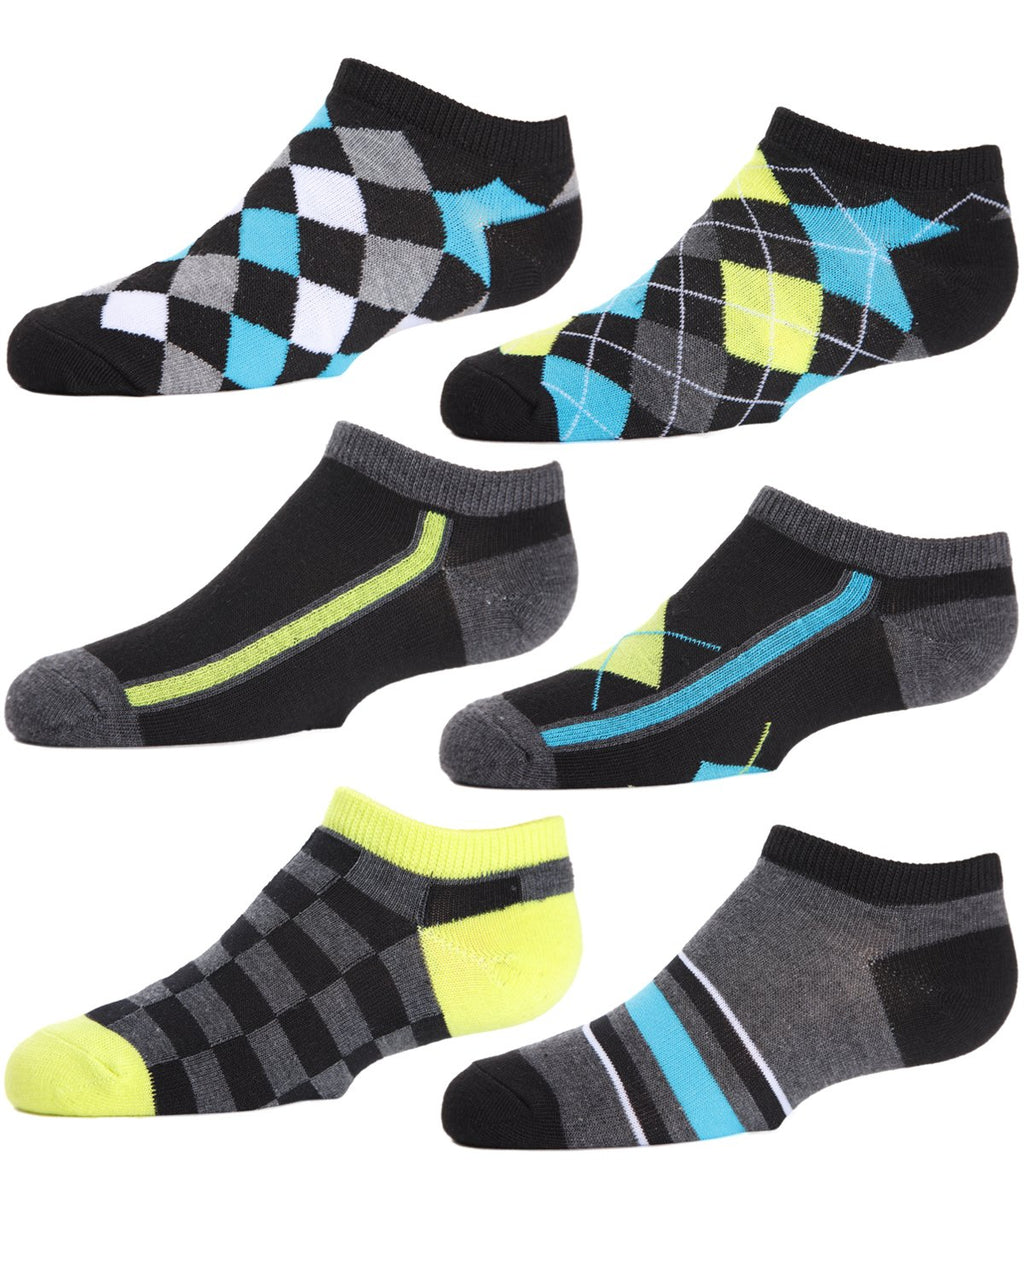 Argyle Flow Boys Low Cut Socks Six-pack